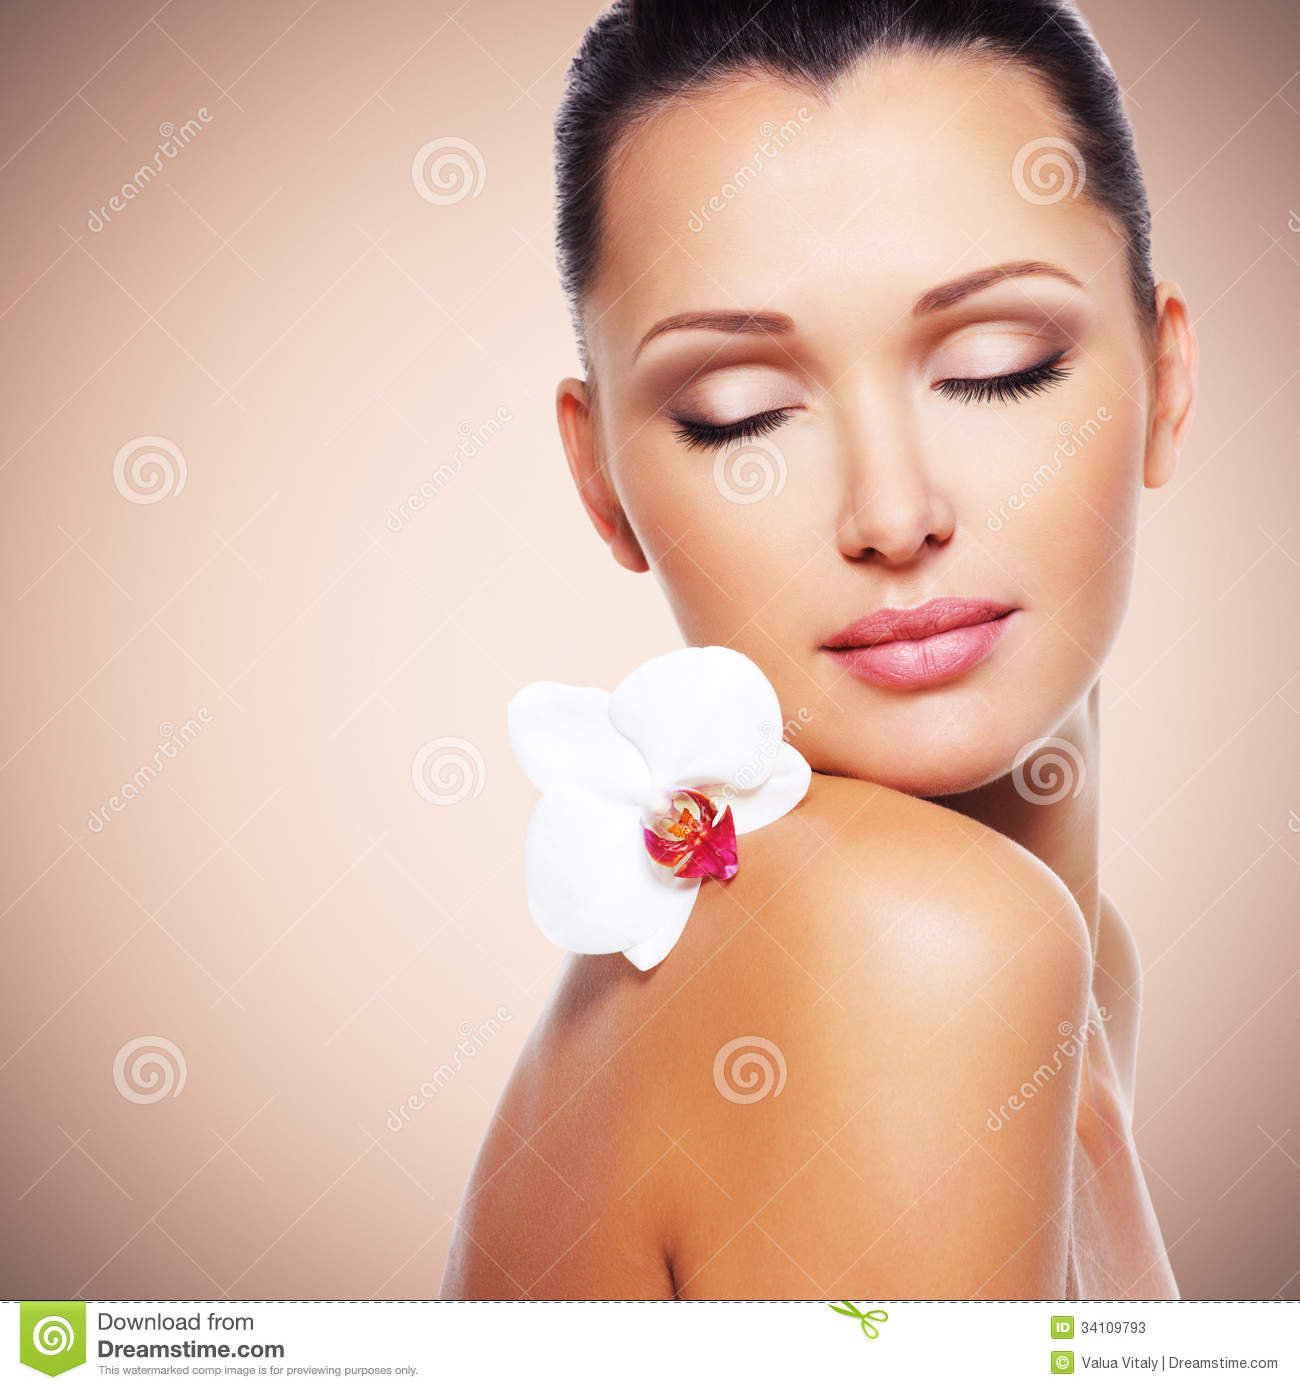 Beautiful Skin Care: Face Of Beautiful Woman With A White Orchid Flower Stock